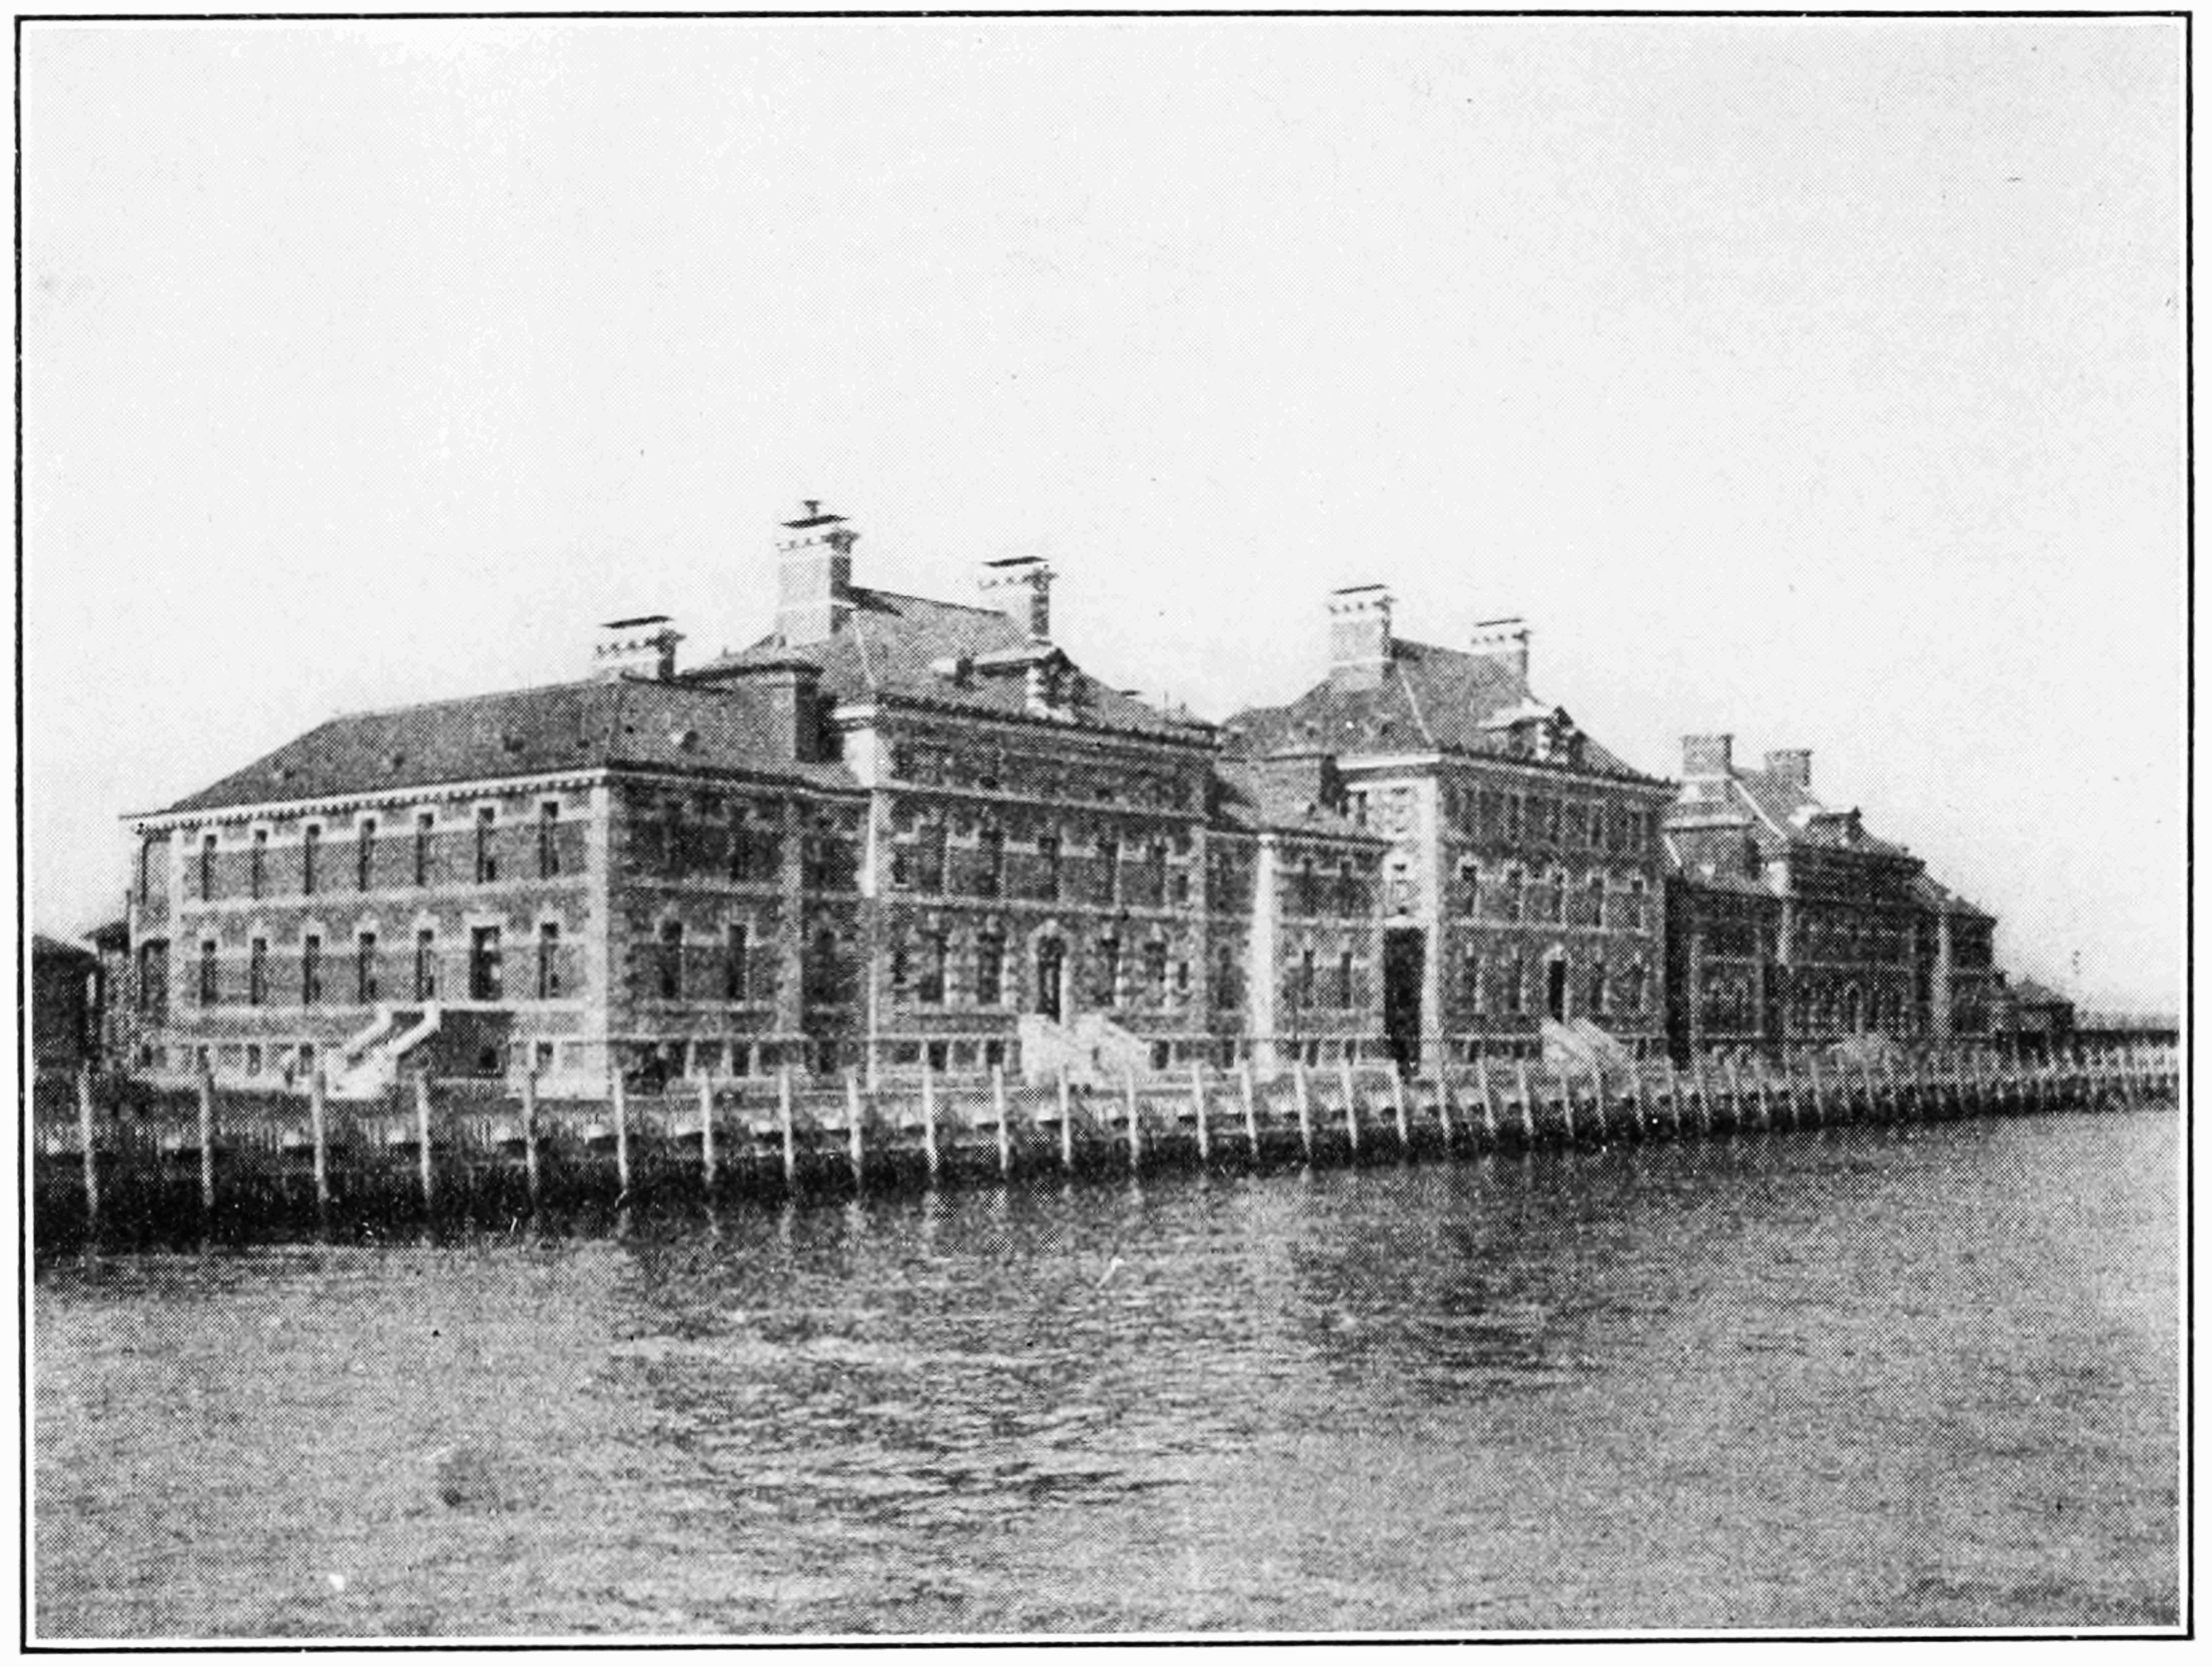 a history of ellis island When the ellis island immigration station opened on jan 1, 1892, the first person to be processed was a teenage girl from ireland named annie moore, per the statue of liberty-ellis island foundation.